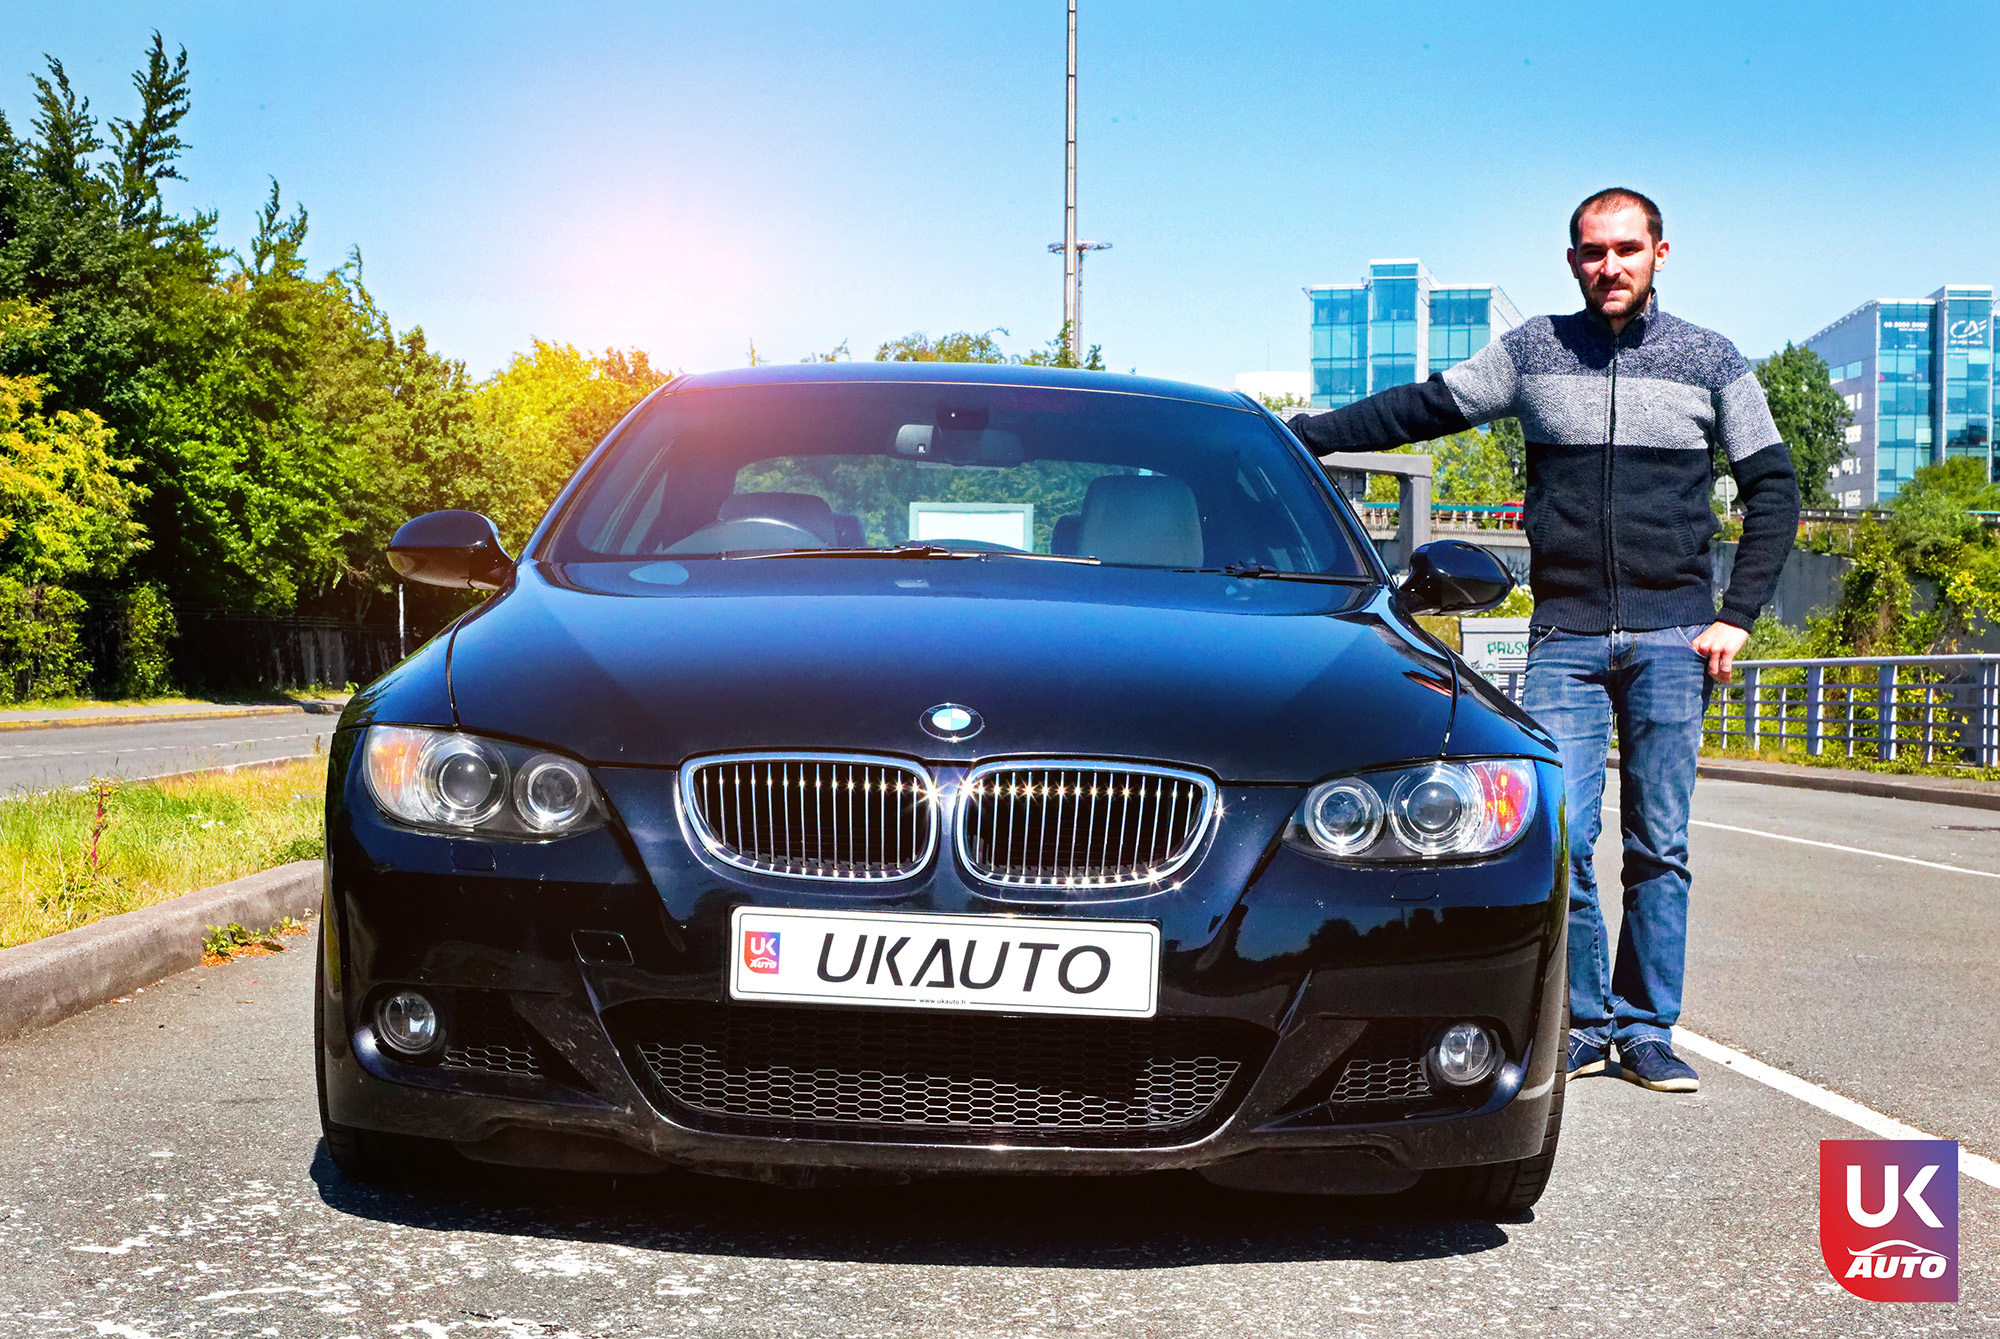 ukauto import bmw 335i bmw import angleterre voiture occasion voiture occasion auto import auto uk auto client14 - Felecitation a Tanguy pour ce bolide BMW 335i PACK M RHD IMPORT AUTO UK